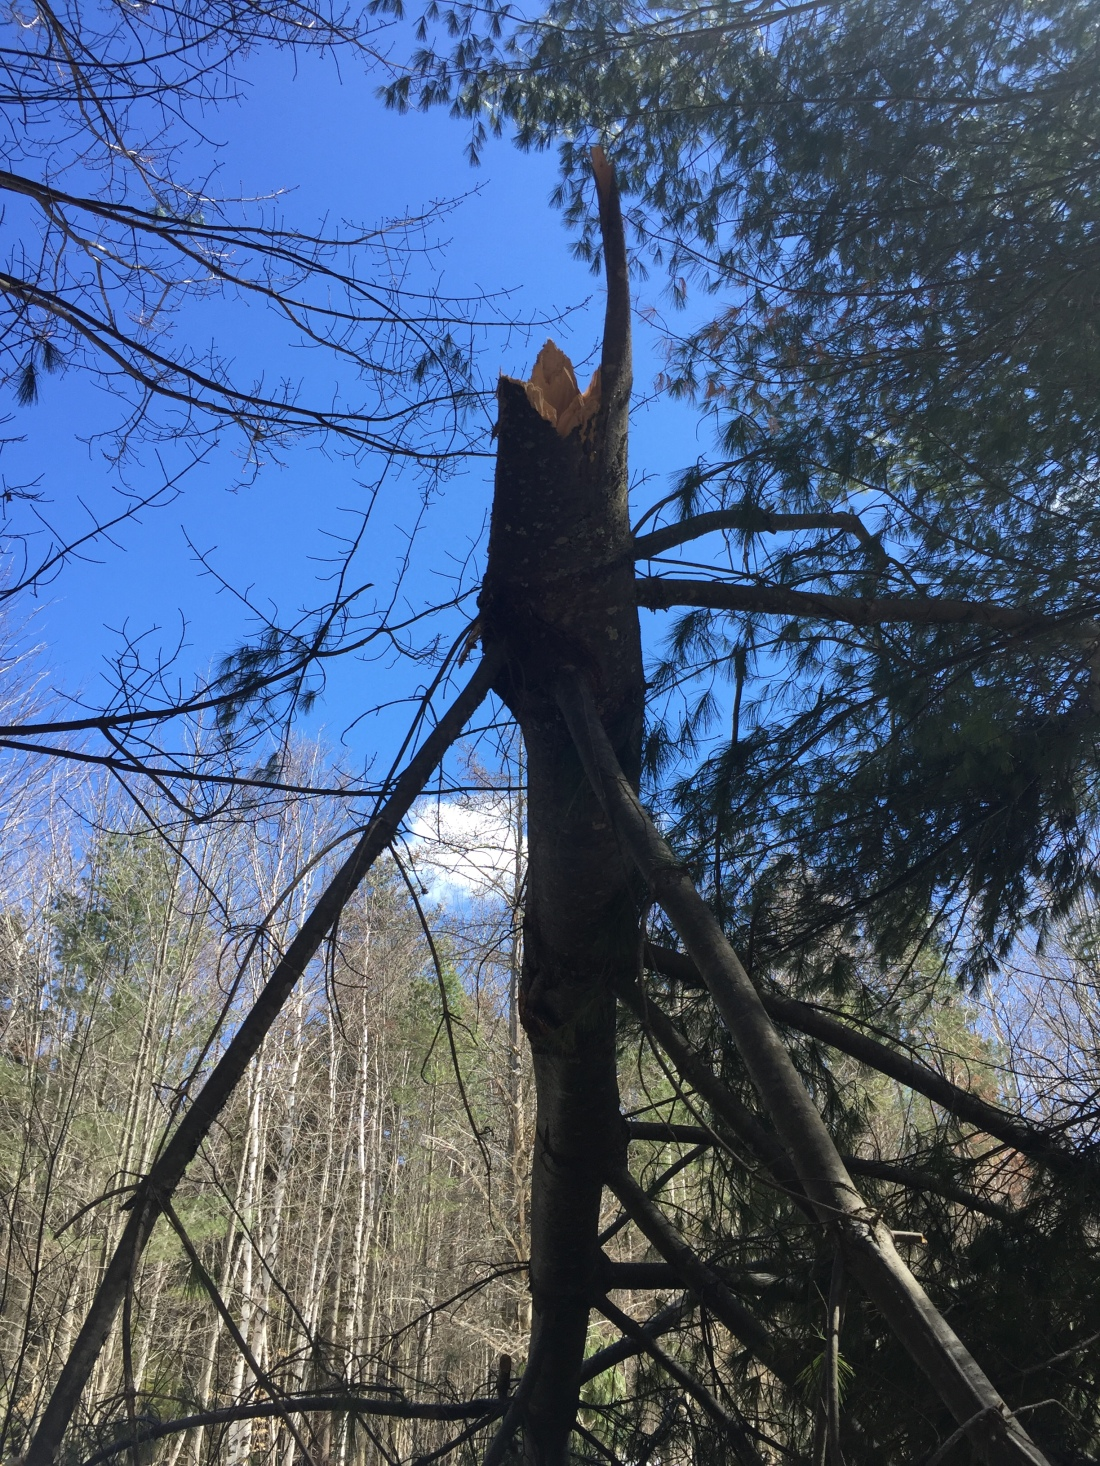 a pine branch against the blue sky with the broken end high in the air